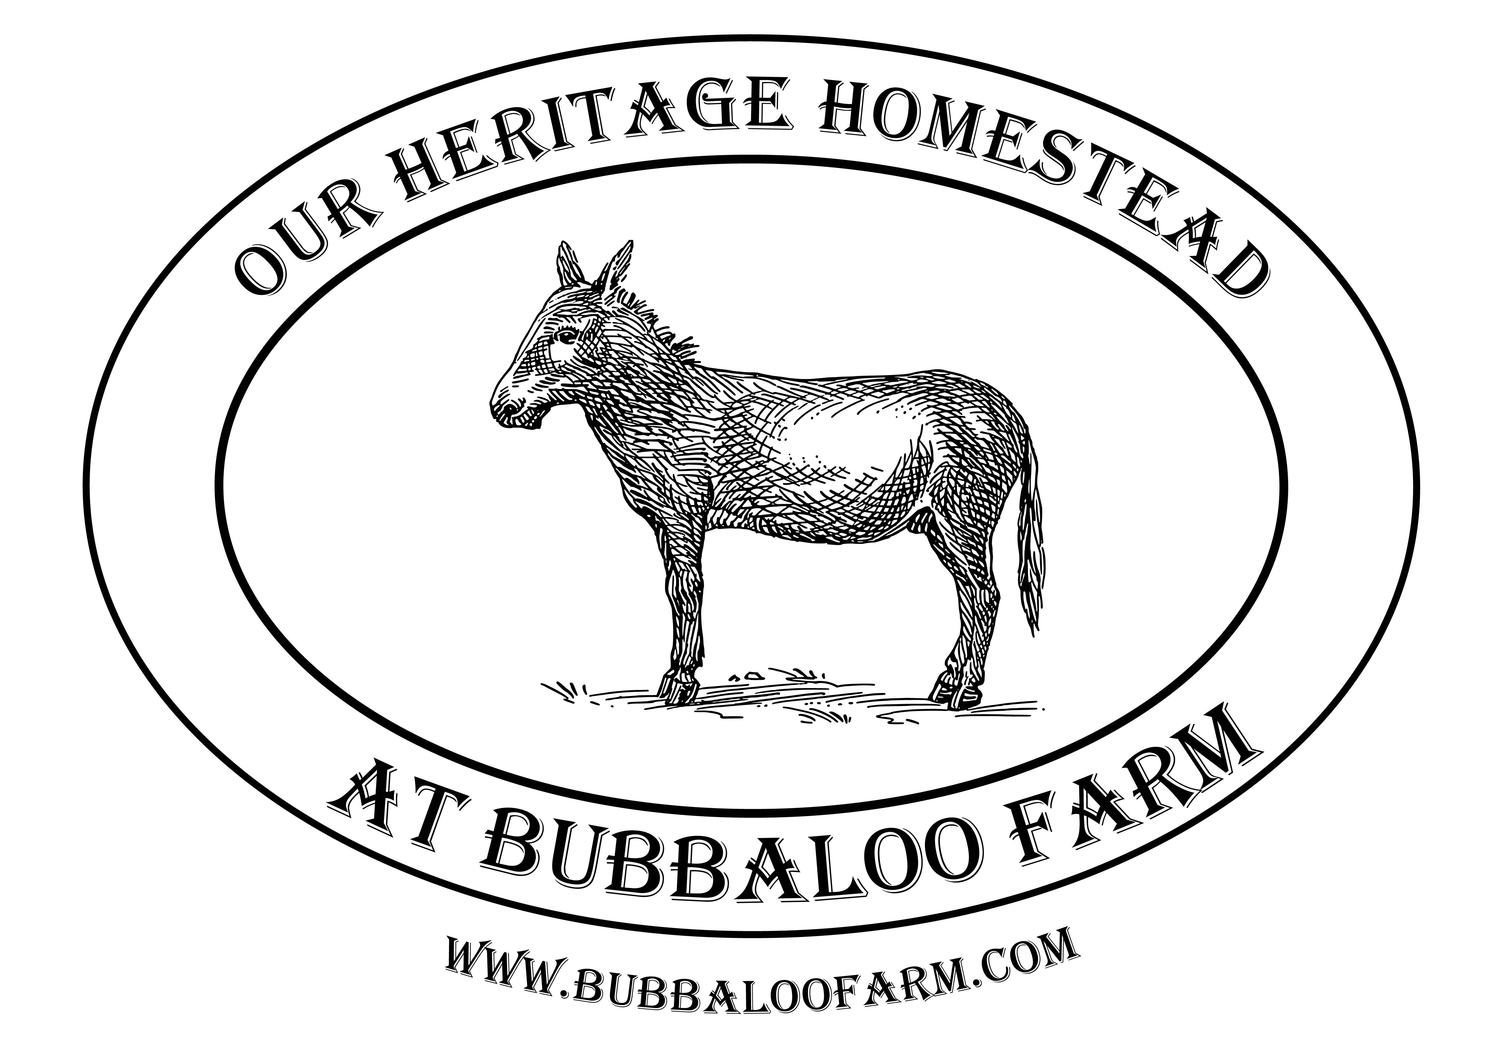 Bubbaloo Farm